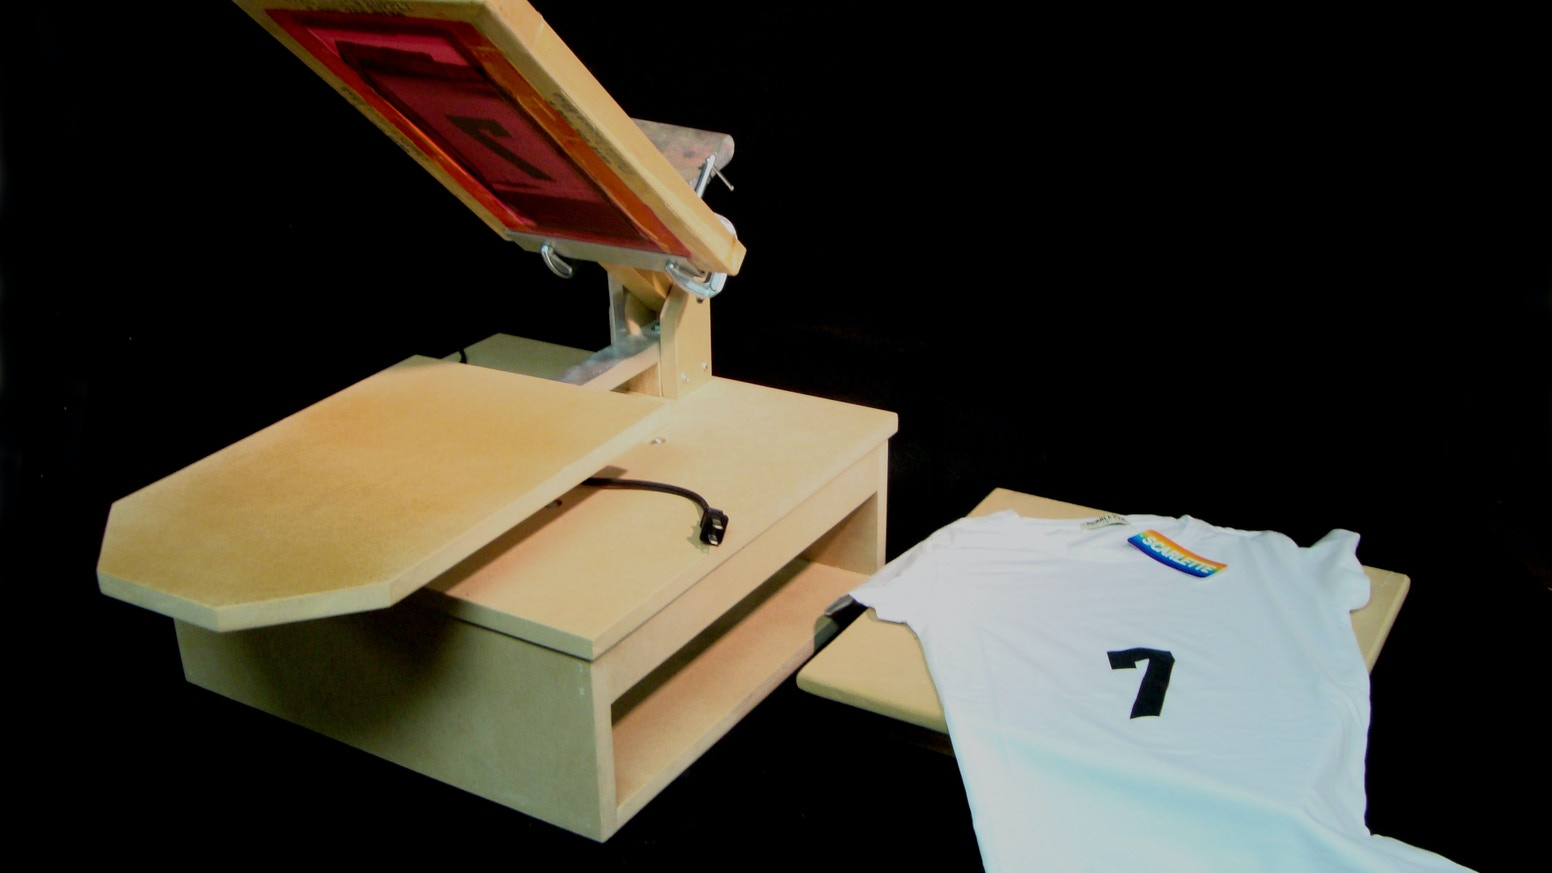 Diy T Shirt Heat Press And Screen Printer Using A Griddle By Joe